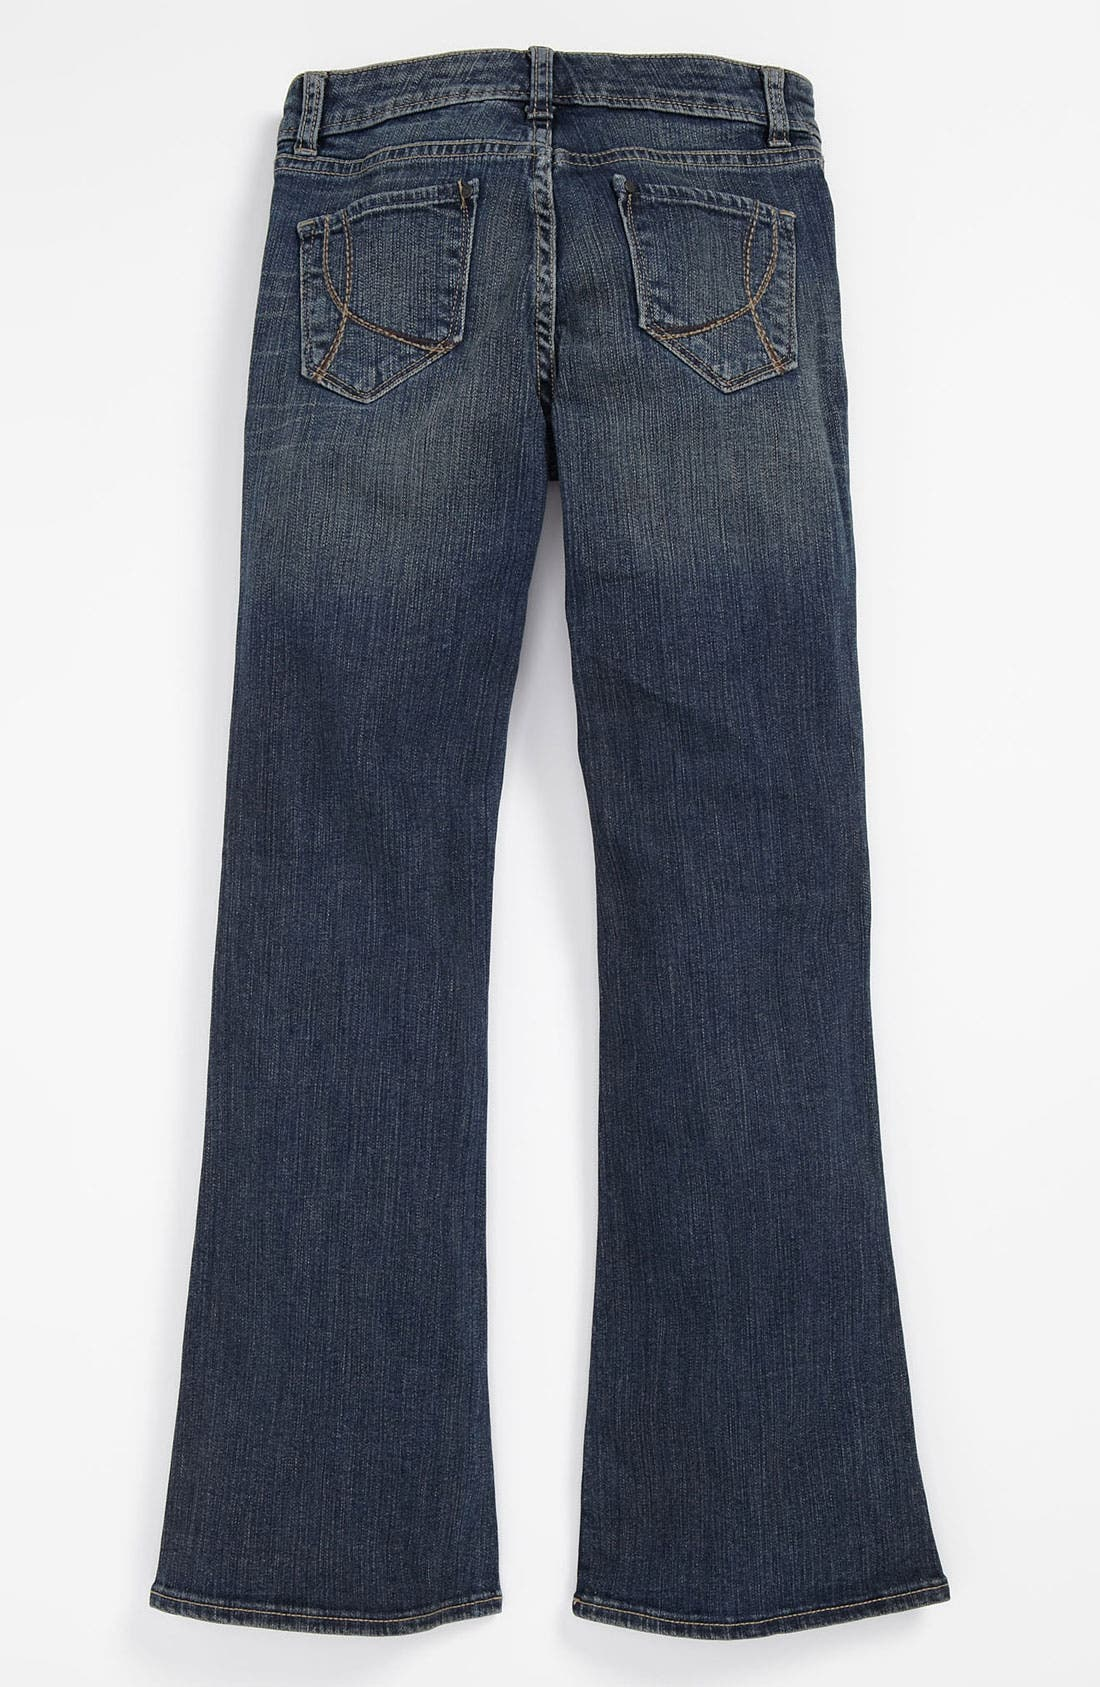 Main Image - !iT JEANS Bootcut Jeans (Big Girls)